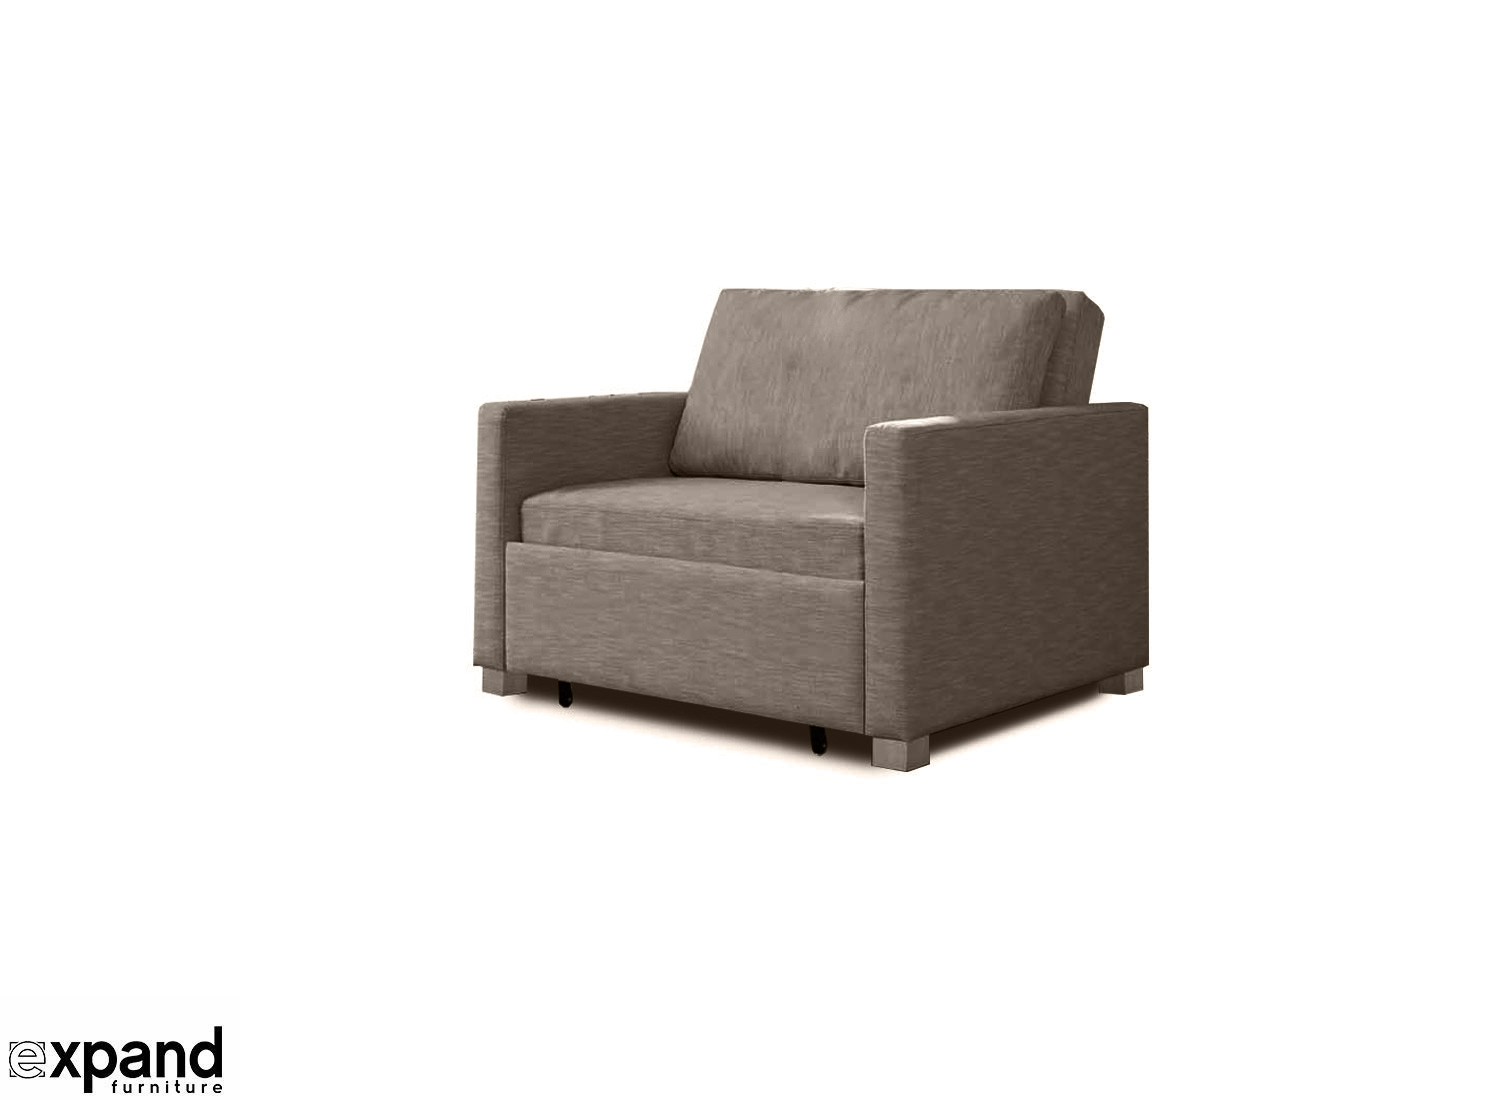 Harmony Single Sofa Bed With Memory Foam Expand Furniture Throughout Single Chair Sofa Bed (Image 7 of 15)